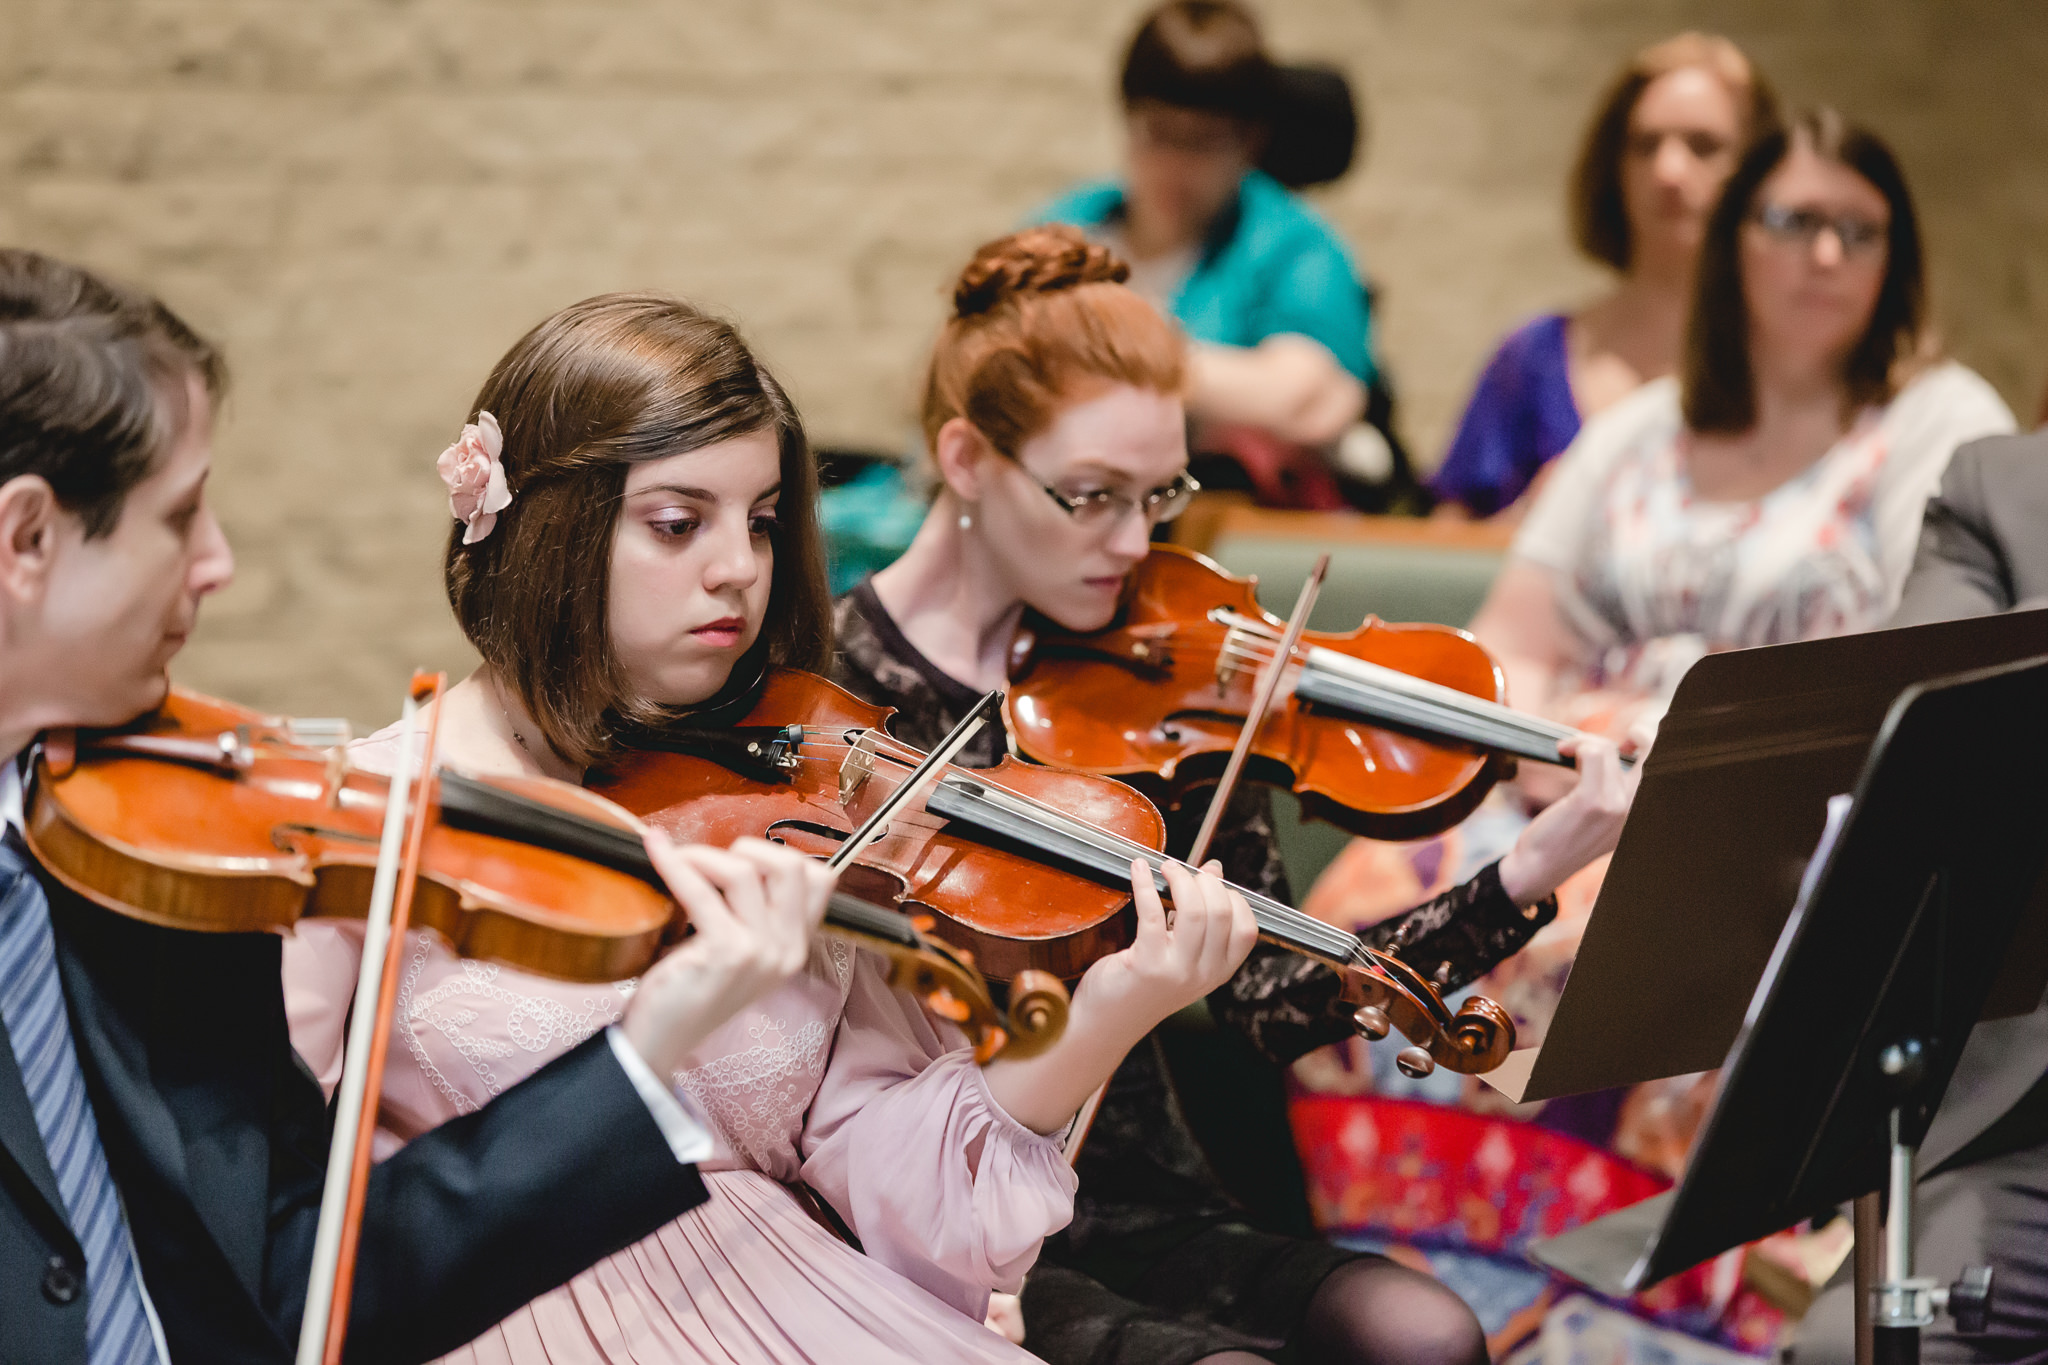 Groom's sister playing violin during wedding ceremony at St. John Neumann Church in Pittsburgh PA